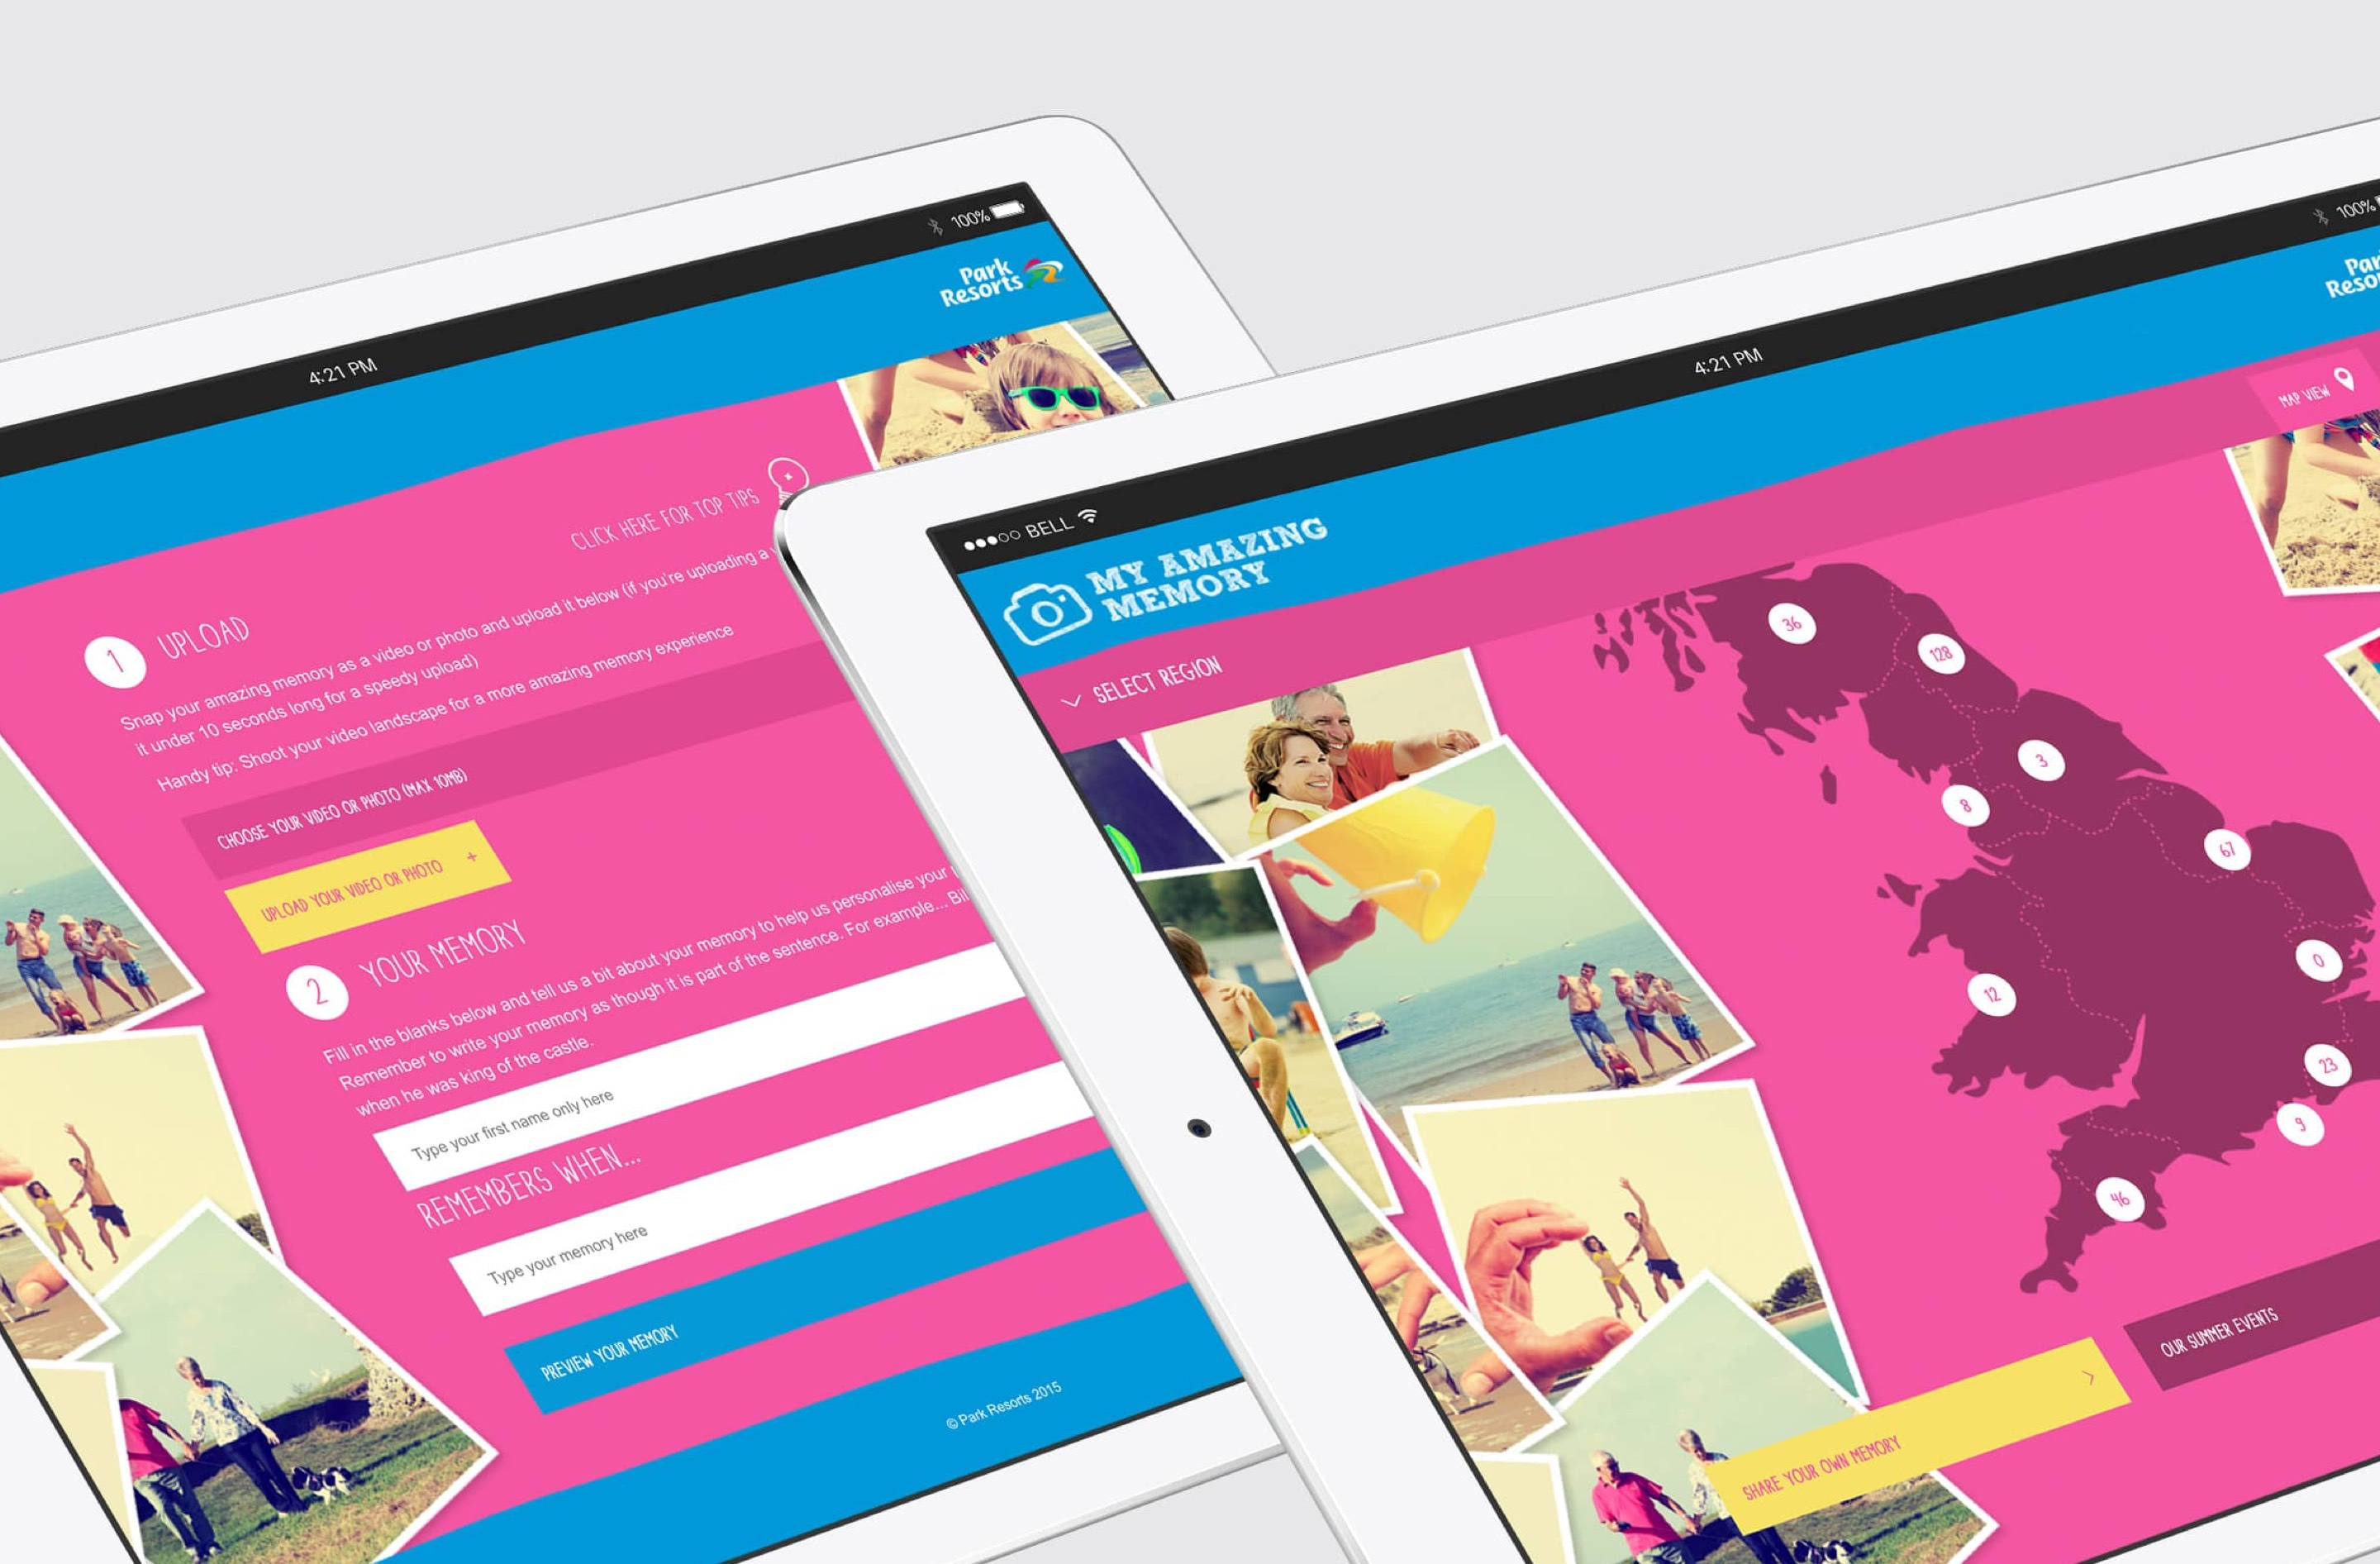 Our microsite website design was mobile friendly